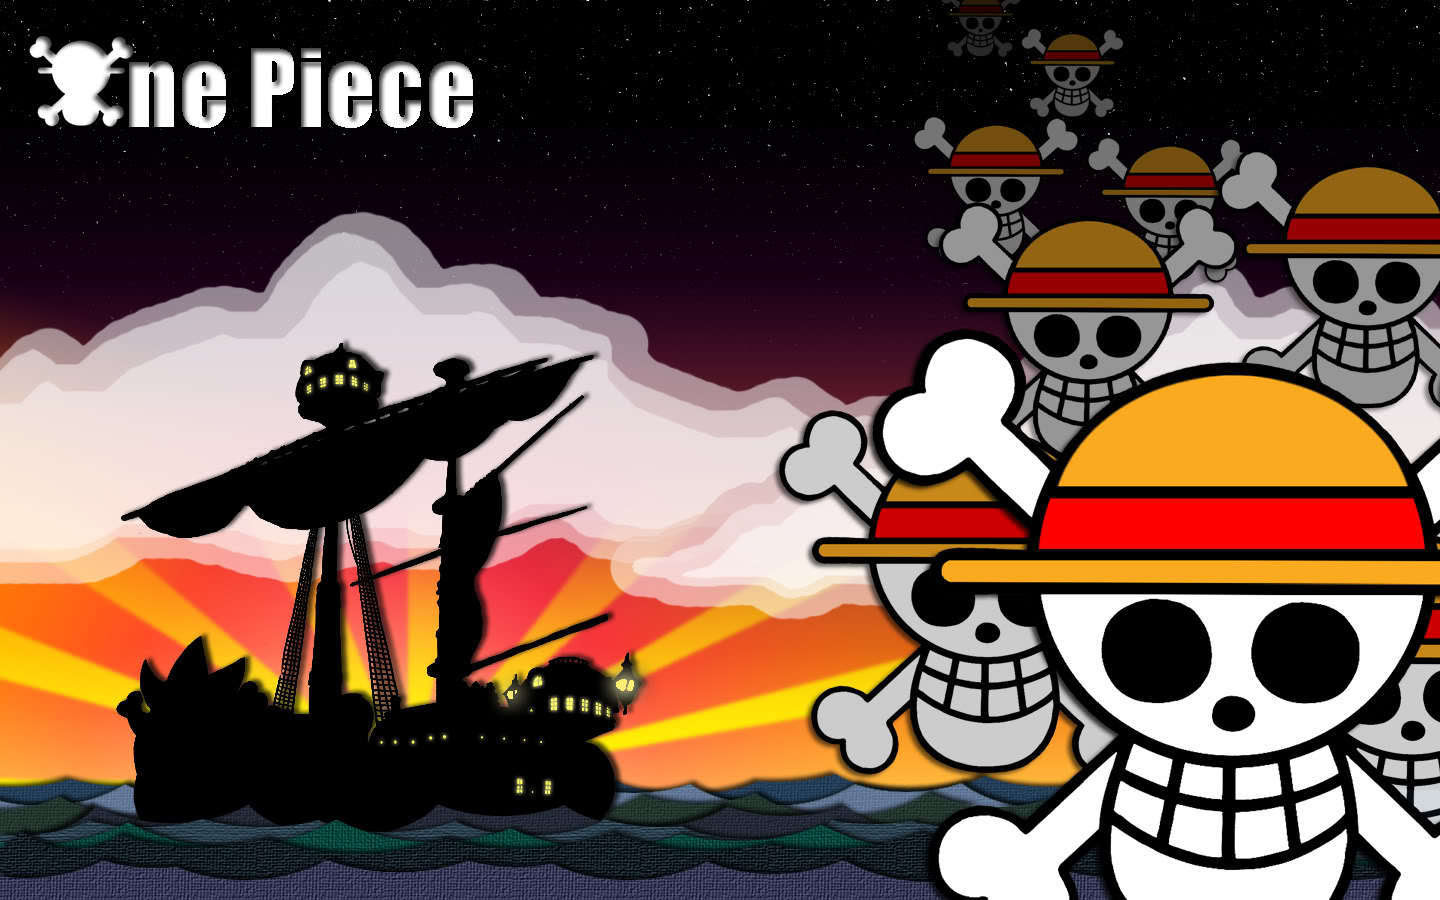 One Piece Logo Desktop Backgrounds For Free Hd Wallpaper Wall